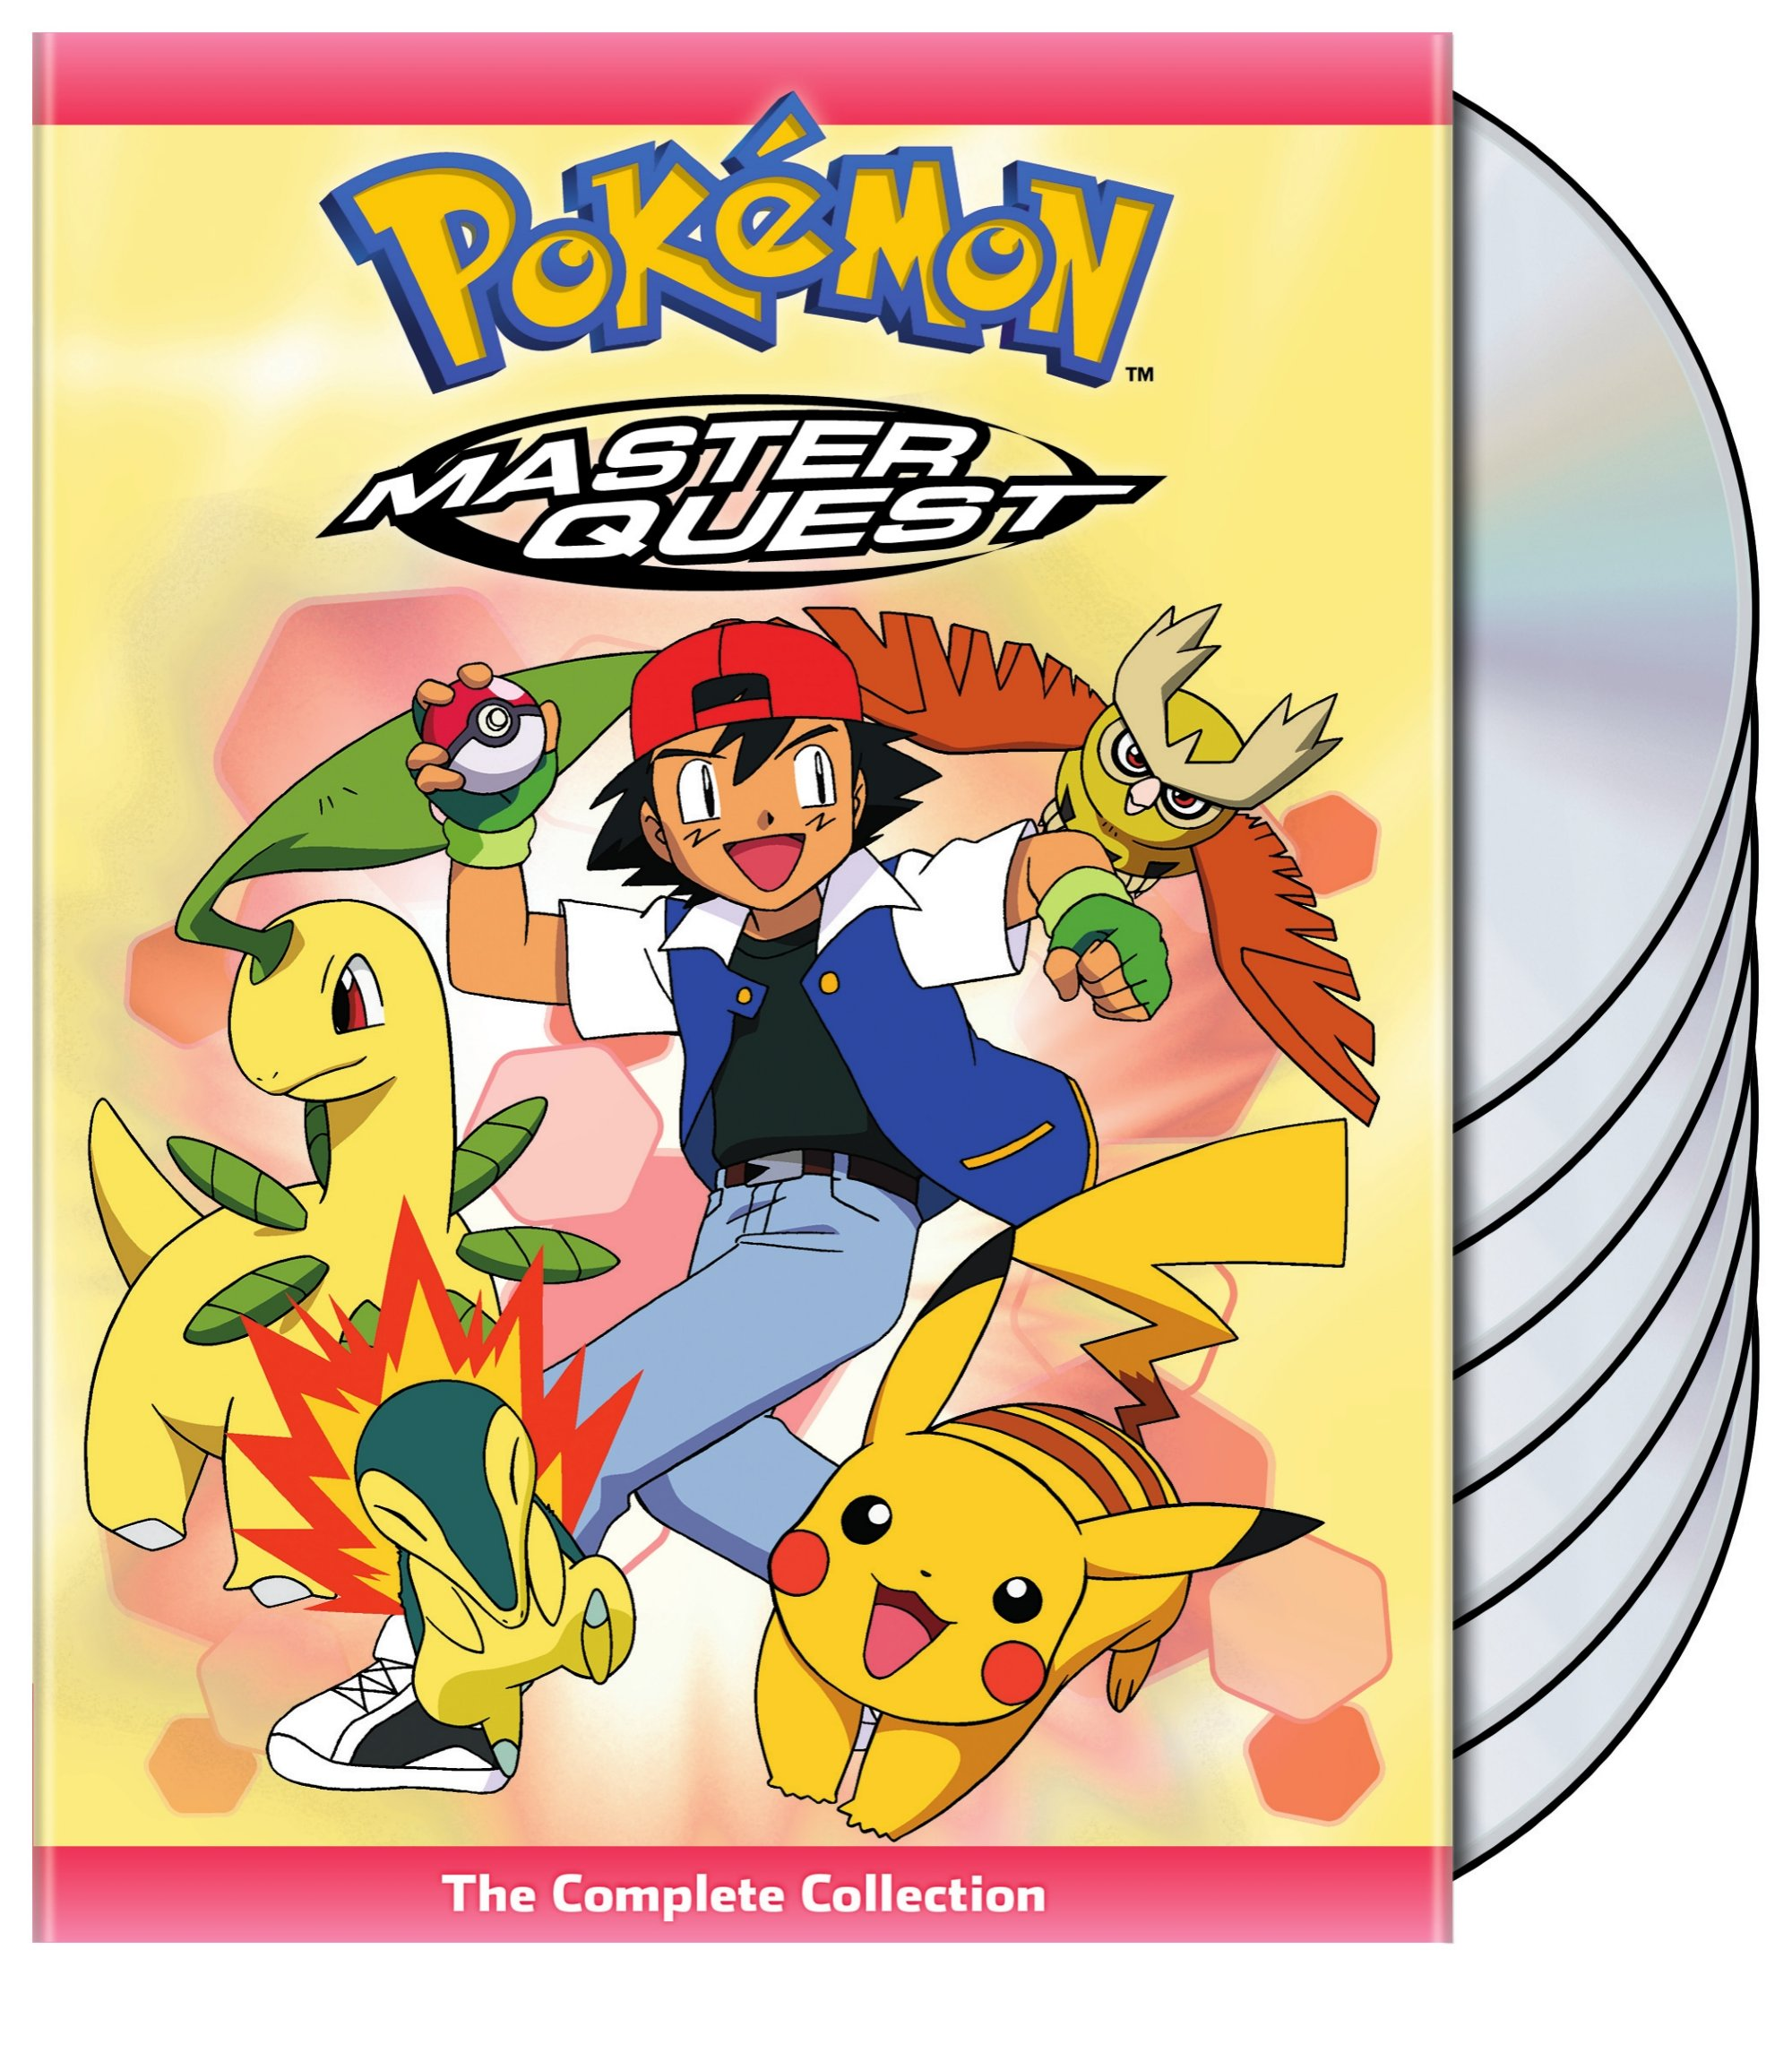 Pokemon Master Quest DVD 782009243984